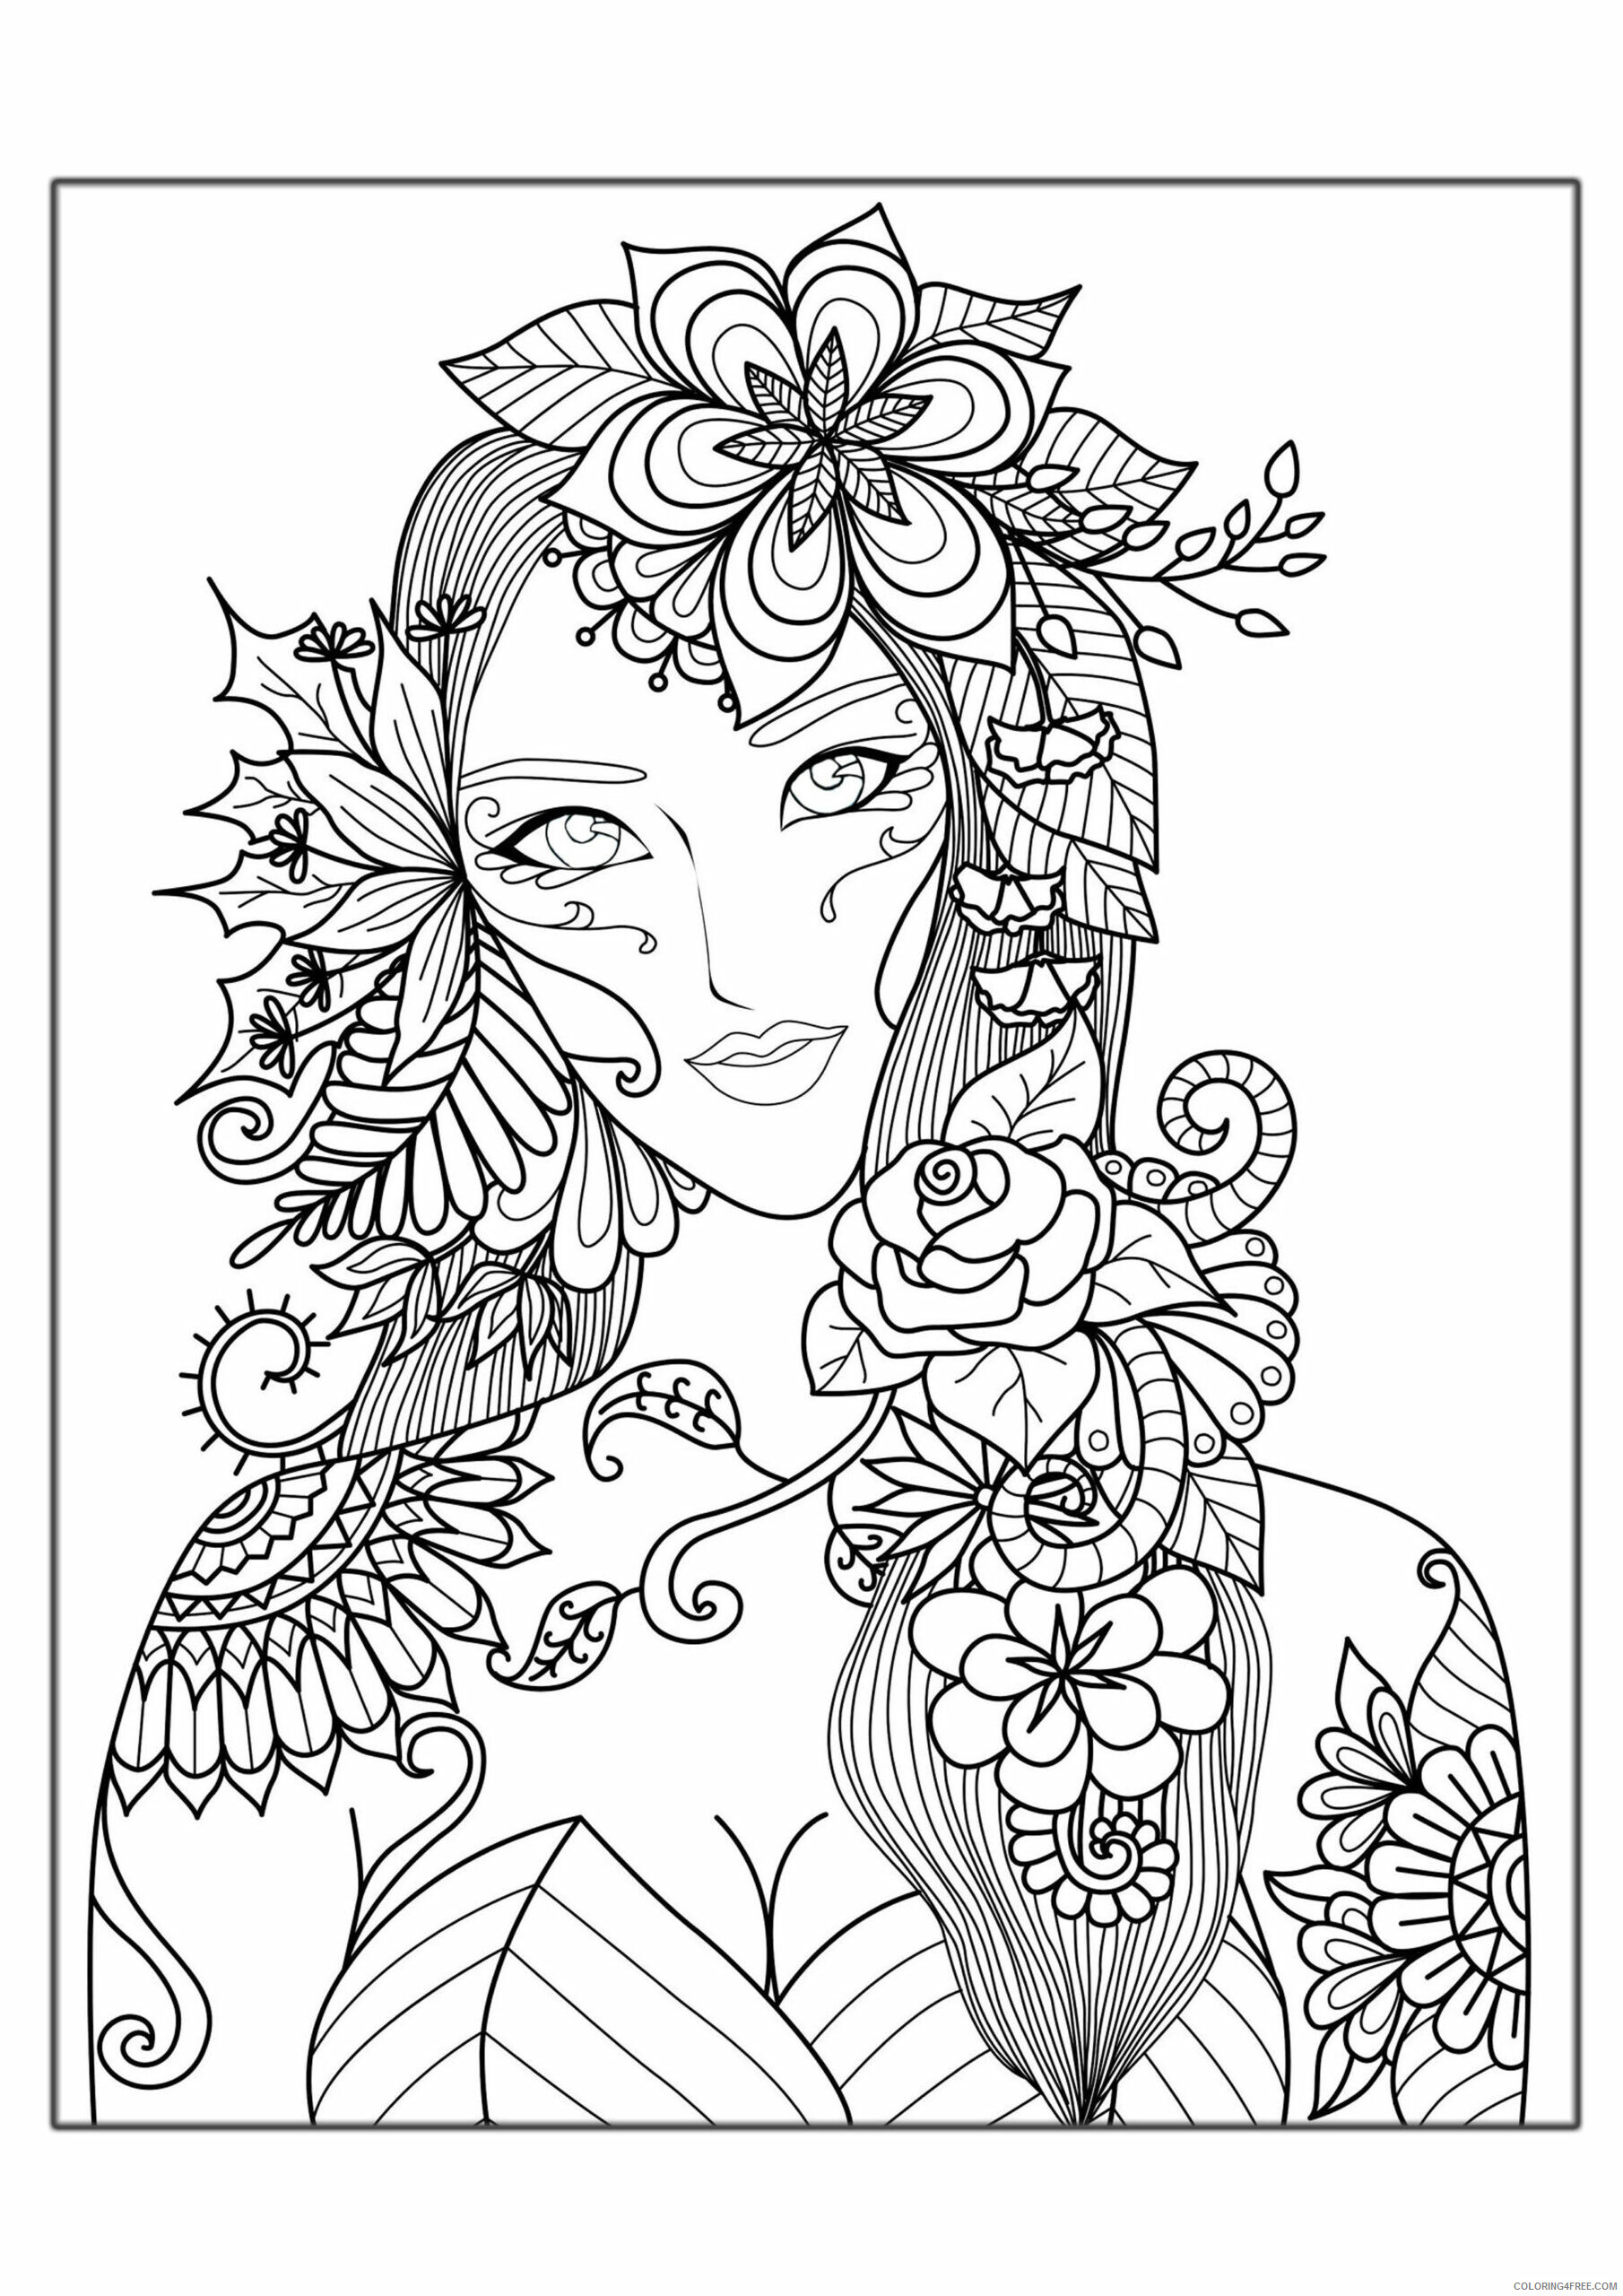 Complex Coloring Pages Adult complex for adults Printable 2020 204 Coloring4free